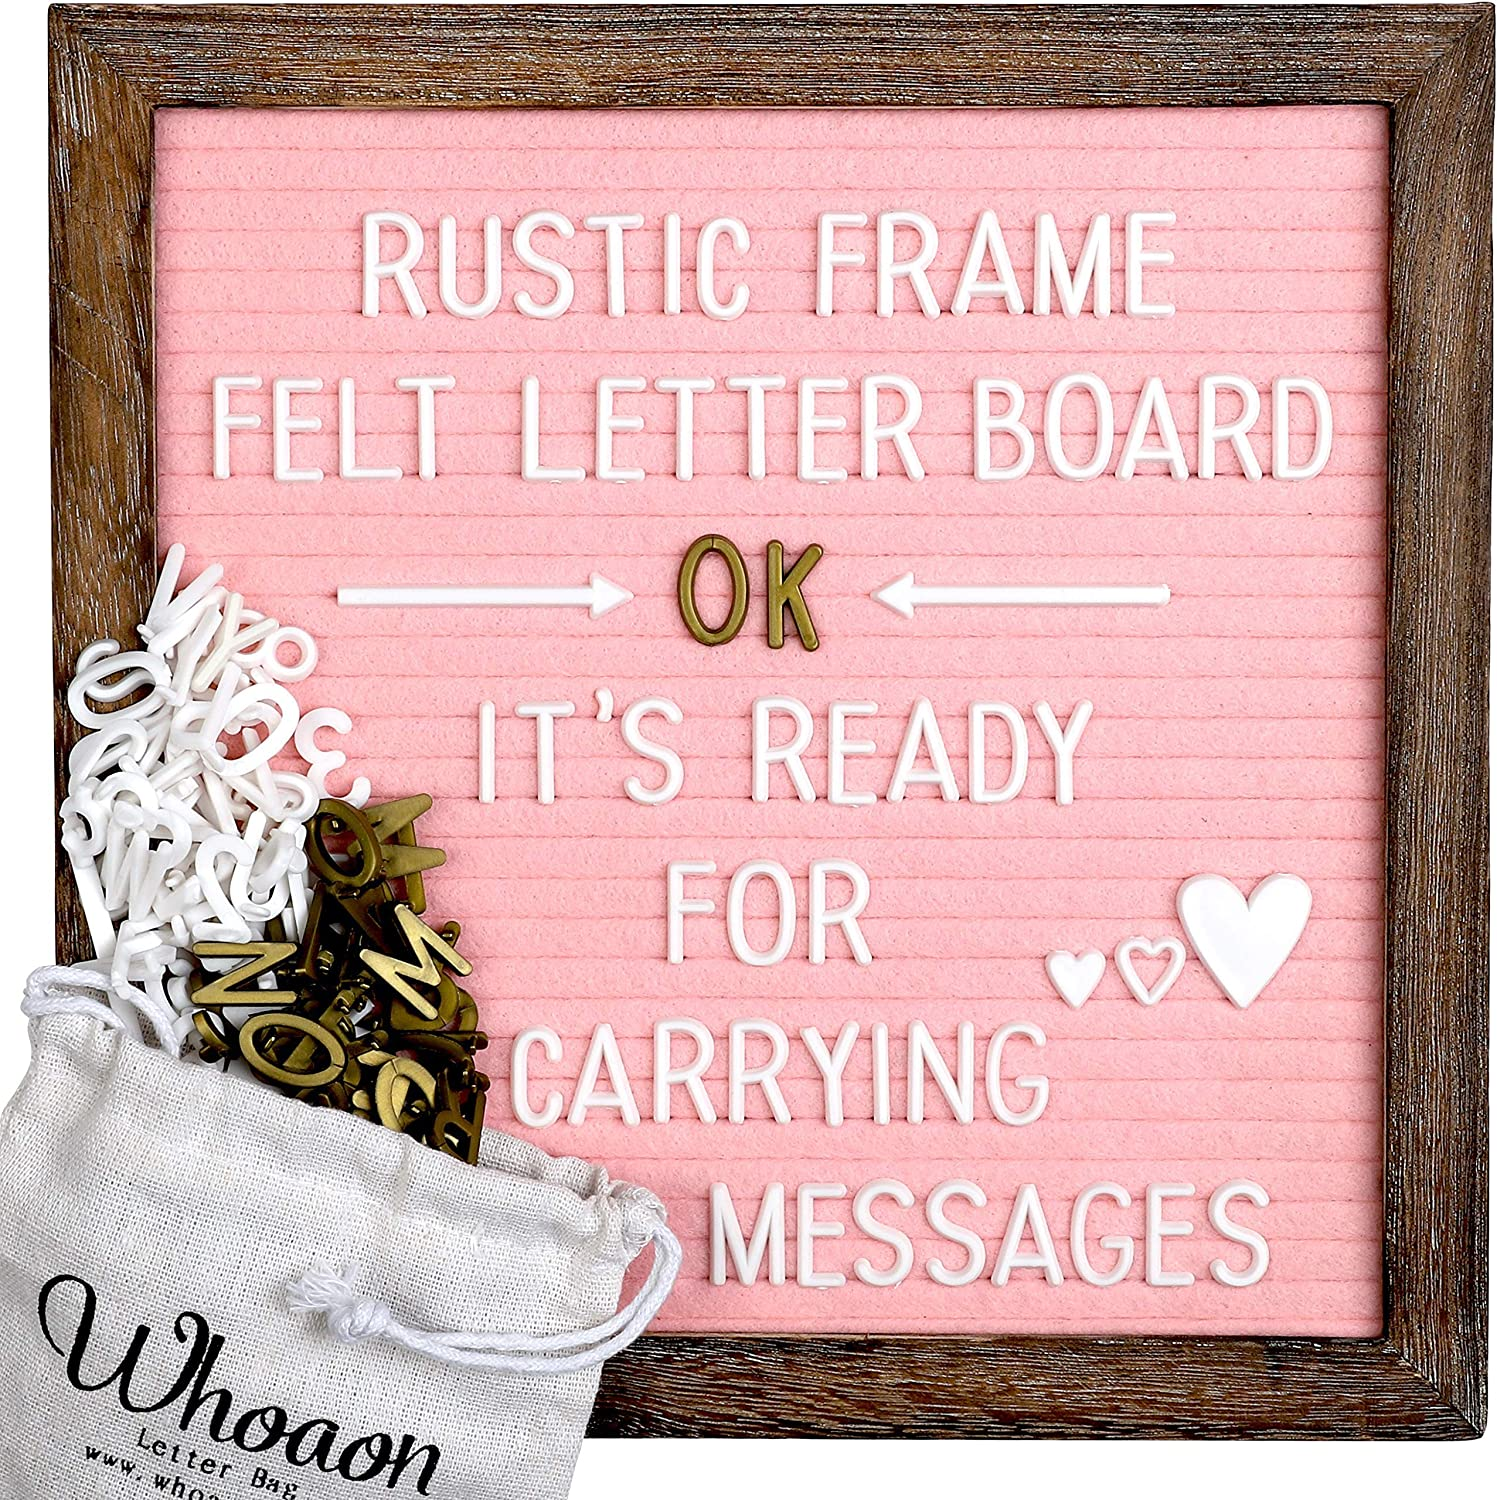 Rustic Wood Frame Pink Felt Letter Board 10x10 inch. Precut White & Gold Letters, Script Cursive Words, Wood Stand. Wall & Tabletop Board Sign for Farmhouse Home Decor. Pink Felt Message Board